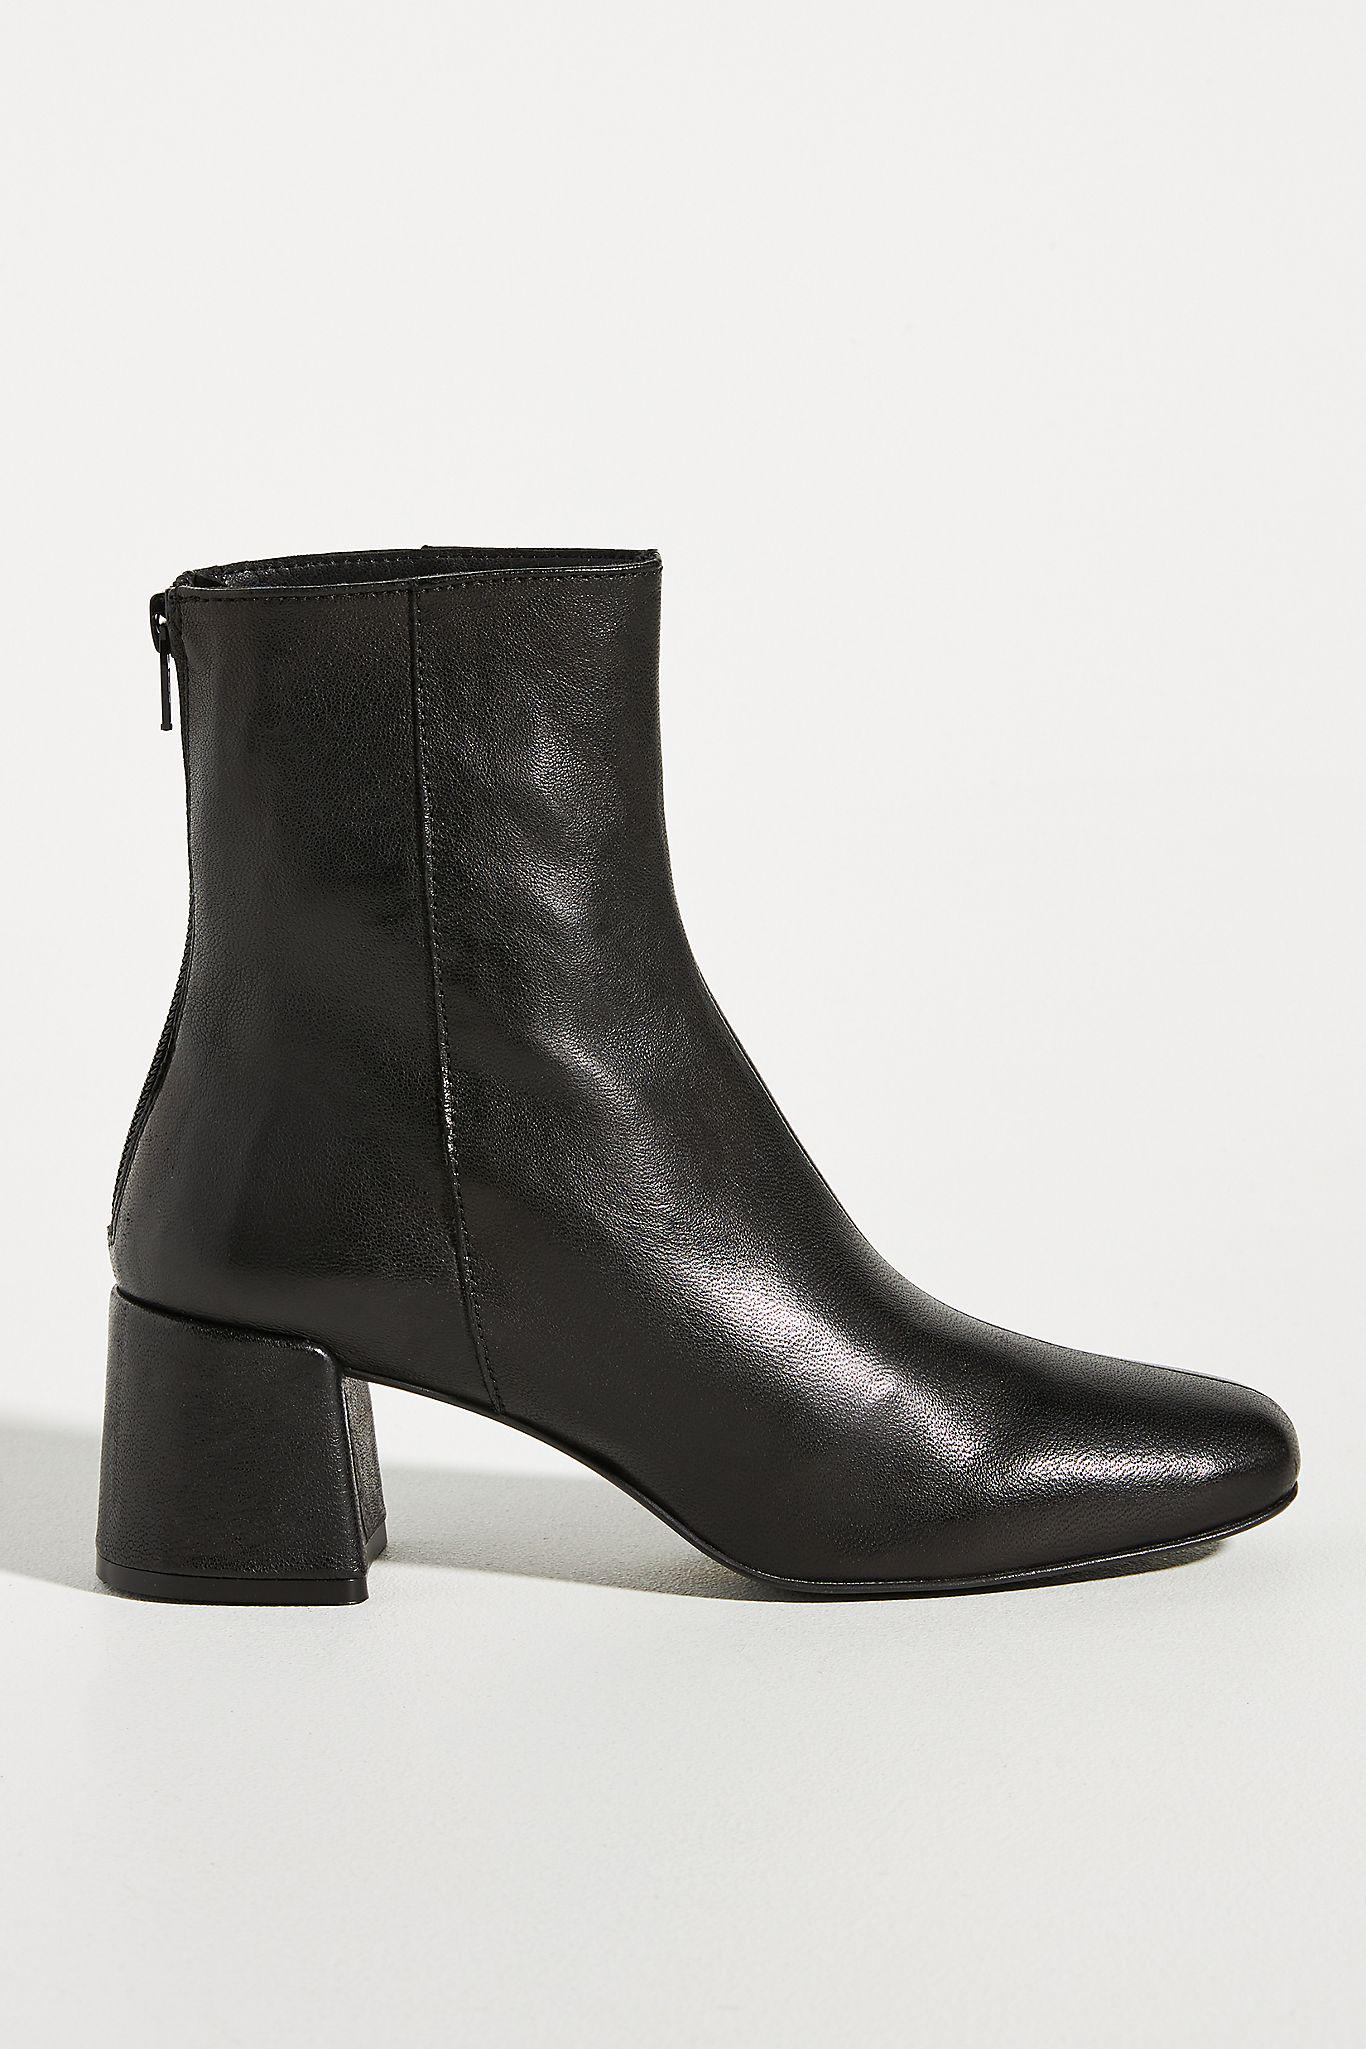 Harlow Ankle Boots